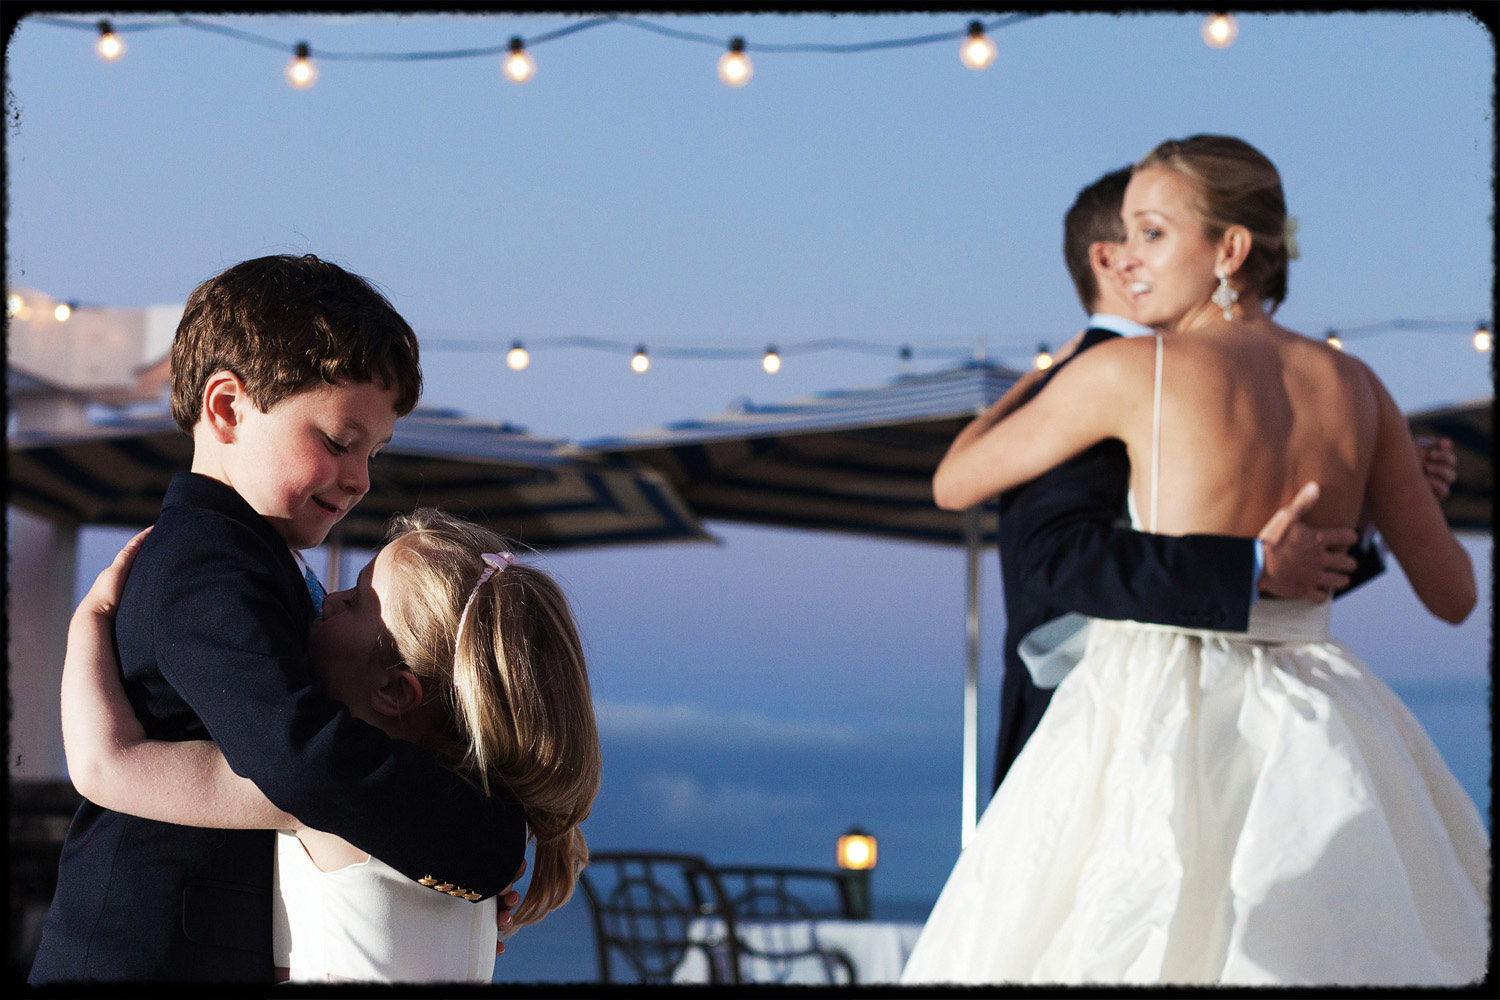 bride and groom watch as kids embrace and dance at wedding